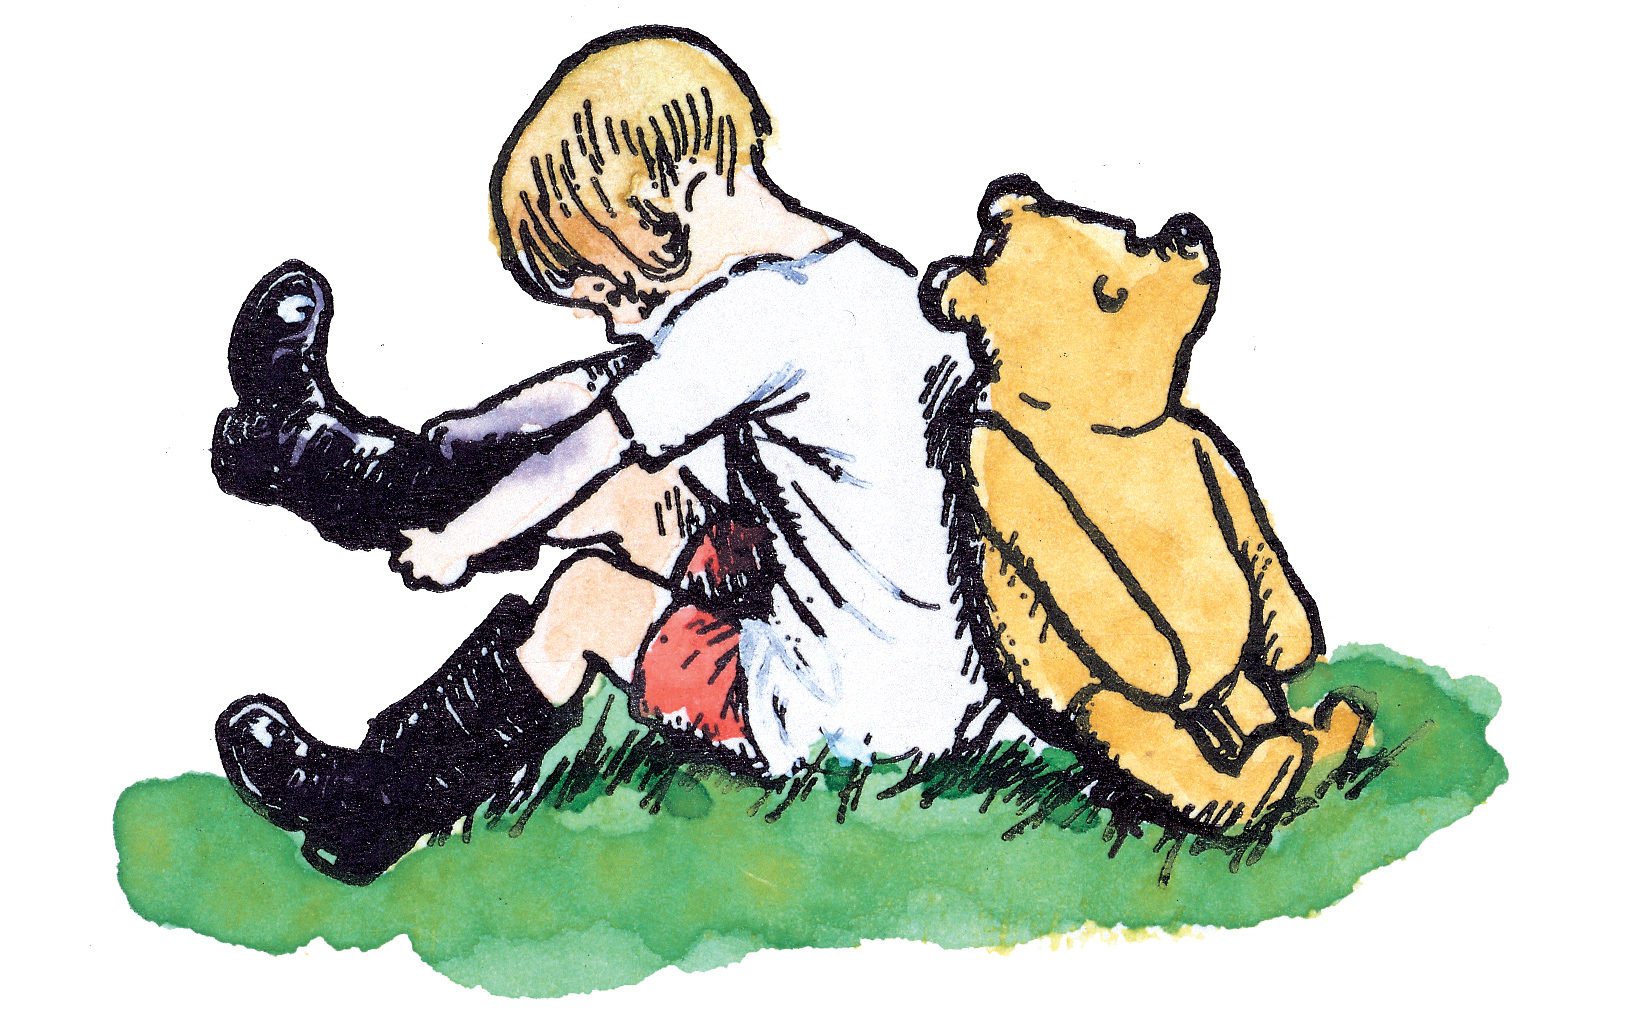 The Canadian story behind Winnie the Pooh